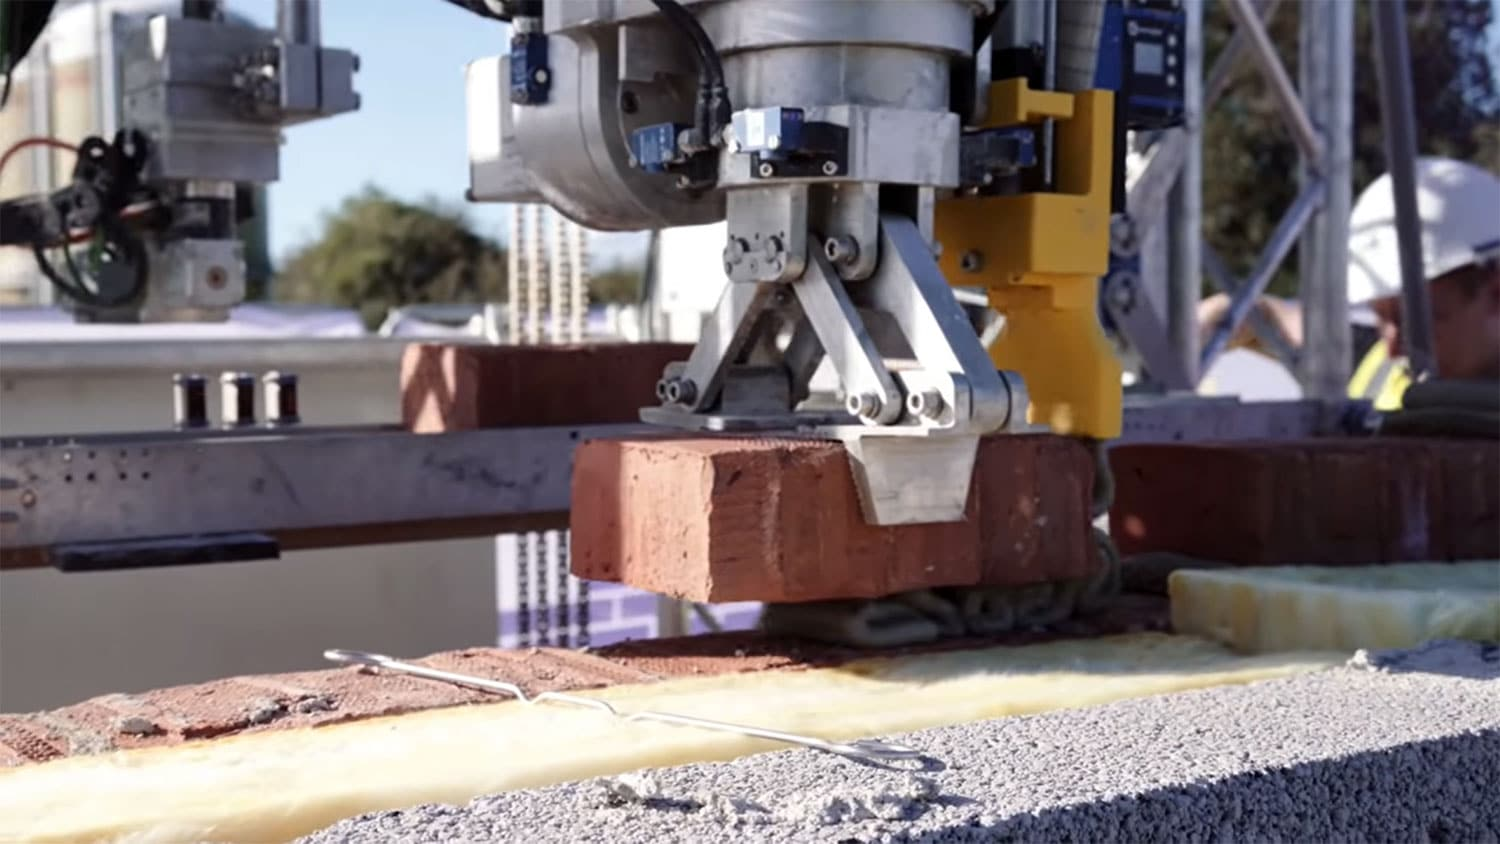 Brick Laying Robot builds a three-bedroom house in the UK